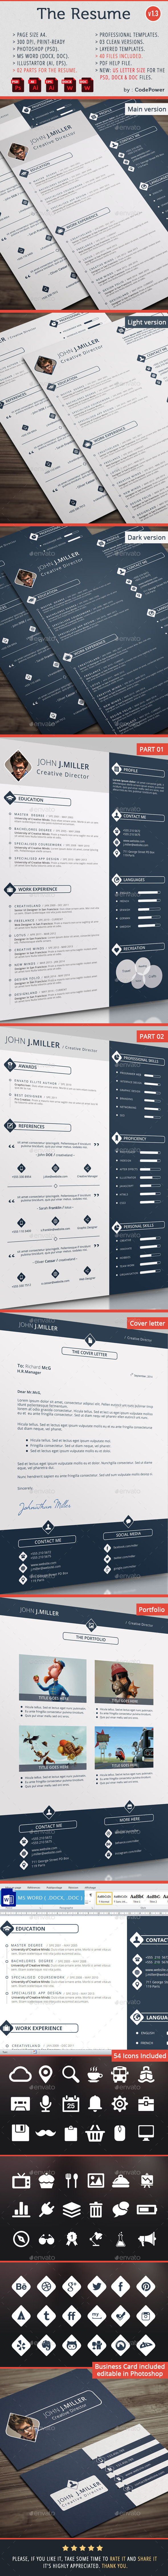 The Resume By Codepower Graphicriver